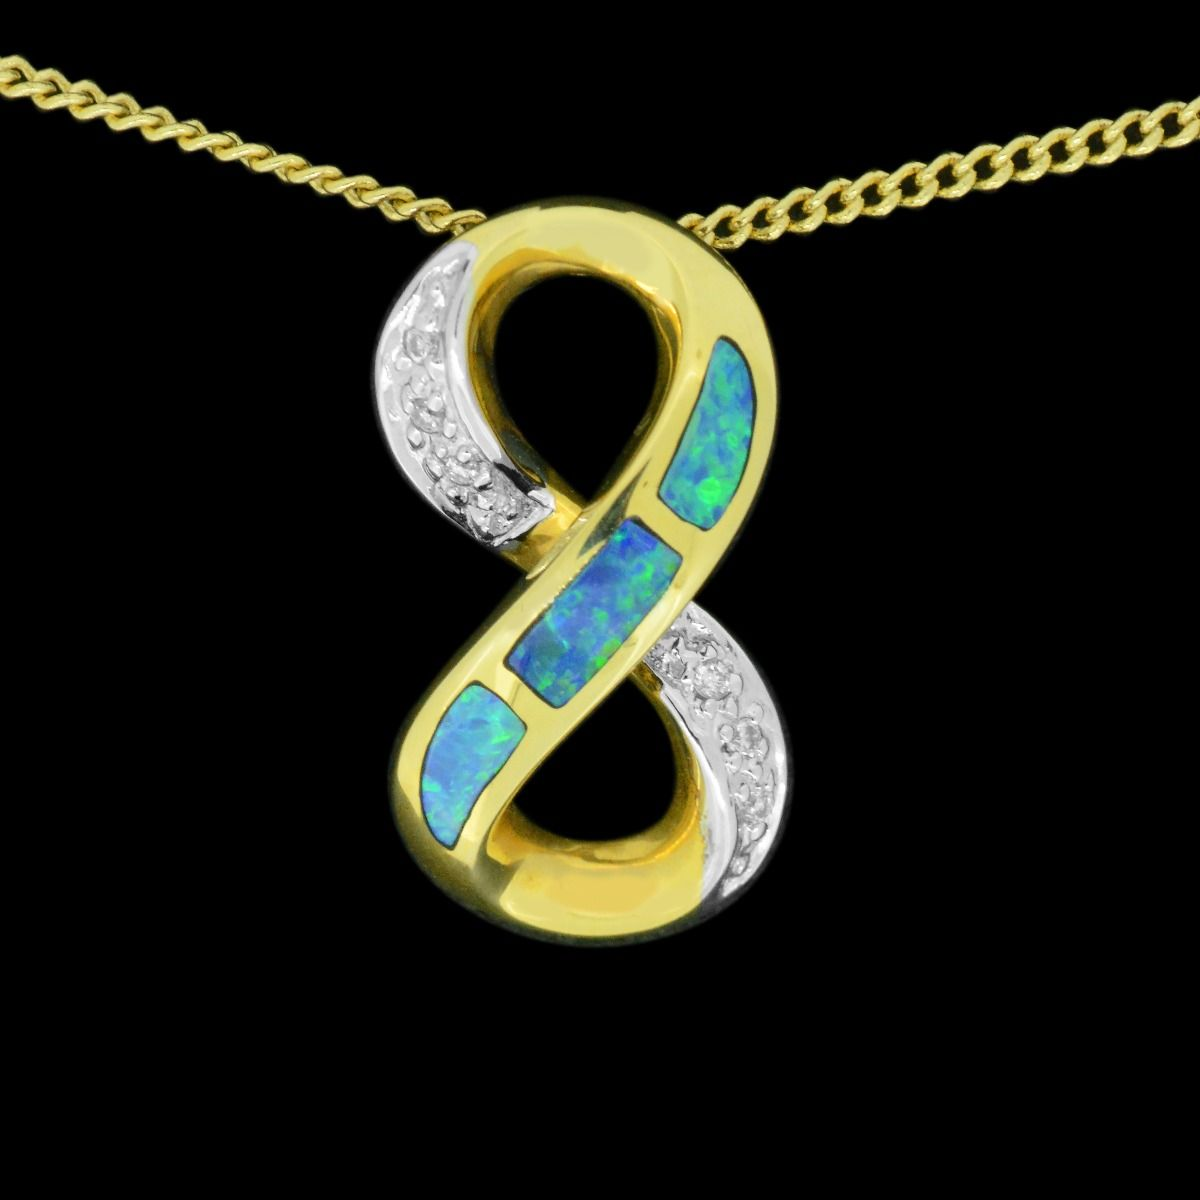 14ct yellow gold inlaid pendant in the shape of a 8